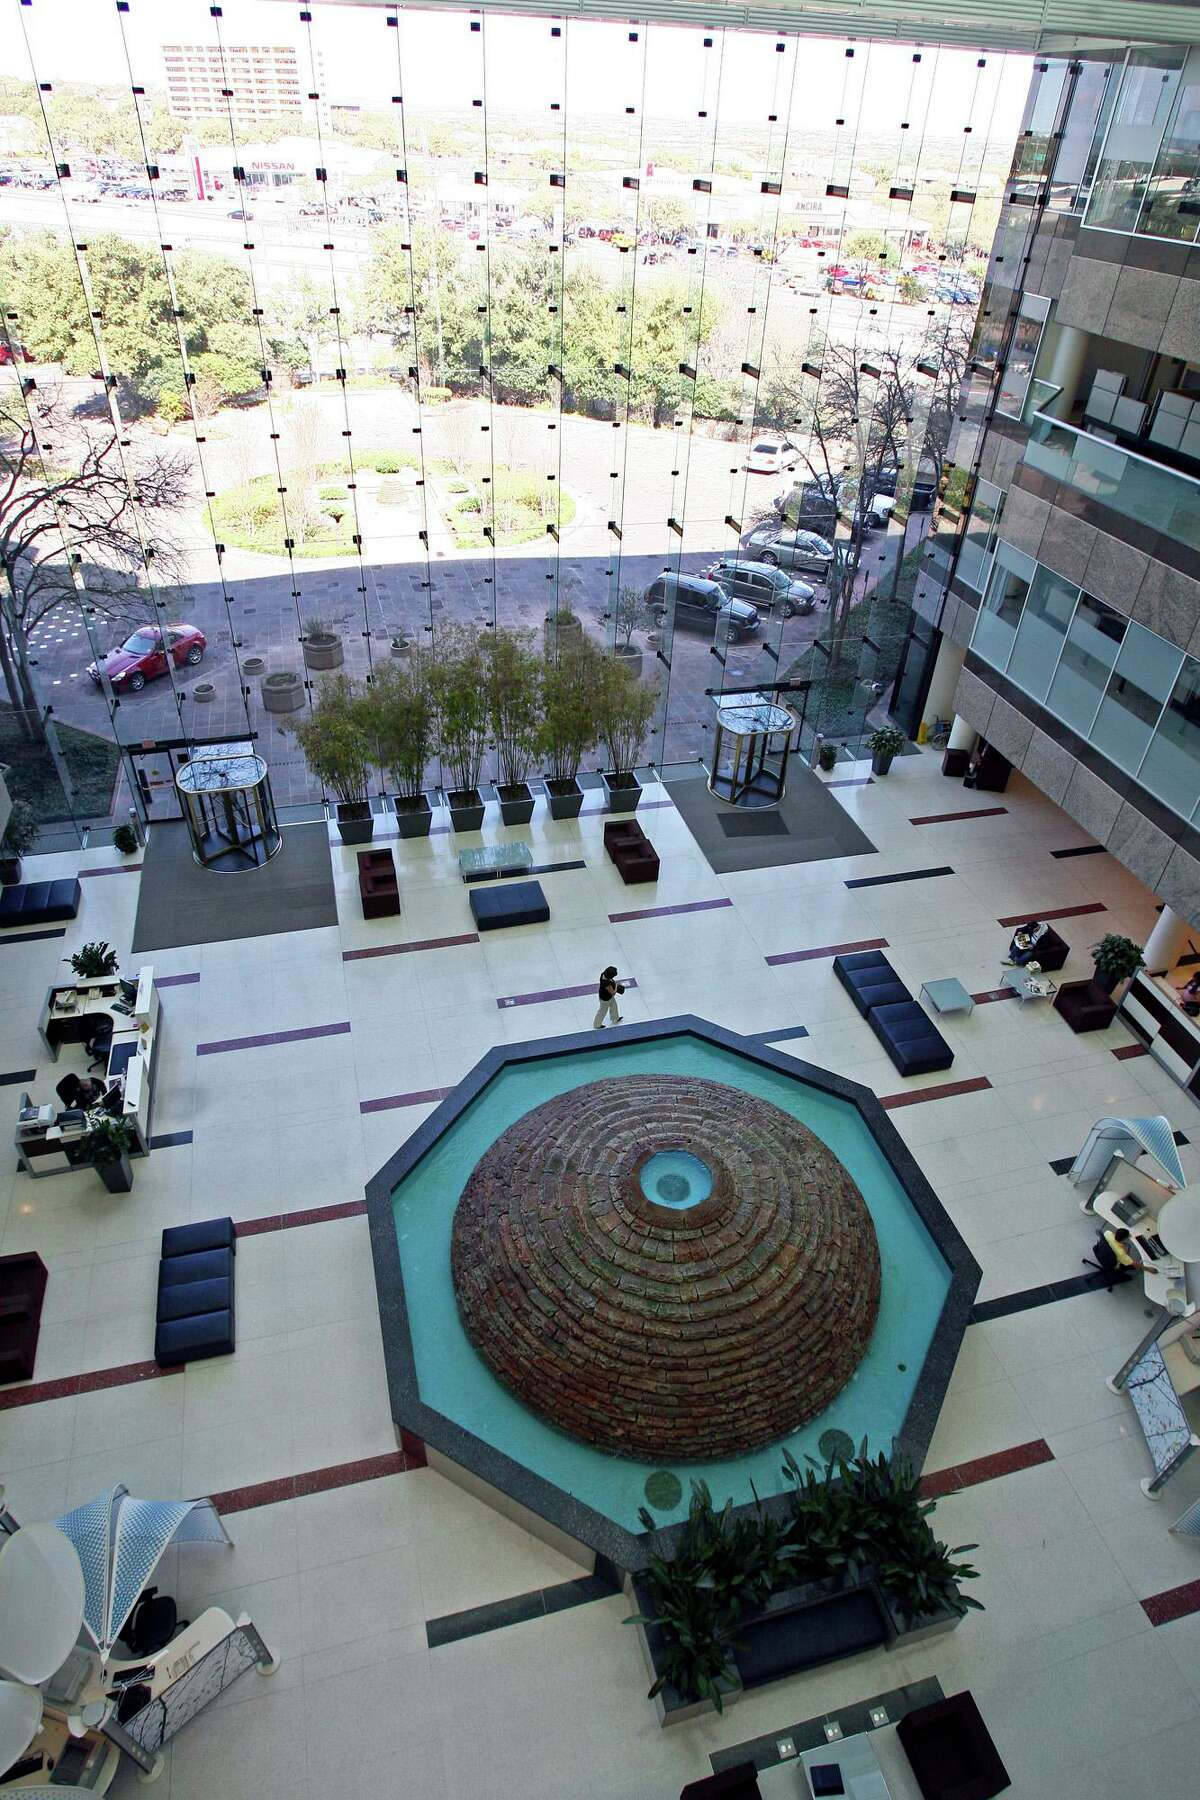 USAA Federal Savings Bank has settled a lawsuit filed by a Virginia woman who alleged the bank attempted to collect a credit card debt by calling her at least 130 times over a two-month span last year. Pictured is the bank's lobby in San Antonio.